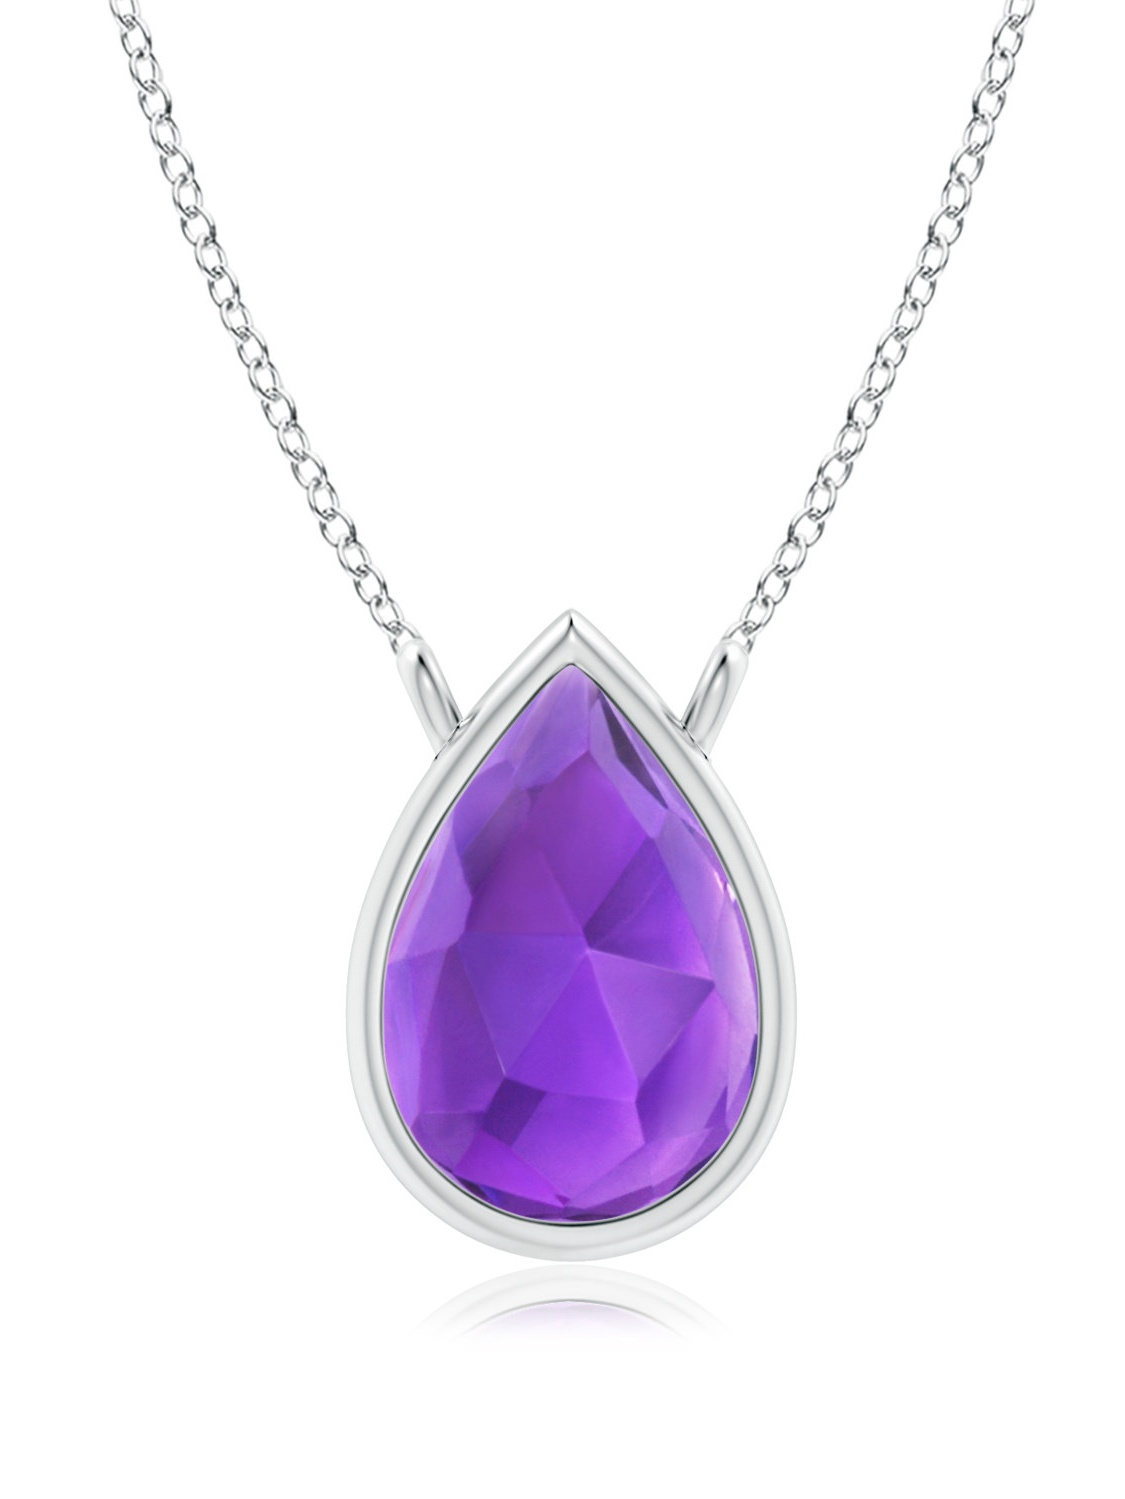 February Birthstone Pendant Necklaces Pear-Shaped Amethyst Solitaire Necklace in 14K Rose Gold (6x4mm Amethyst)... by Angara.com